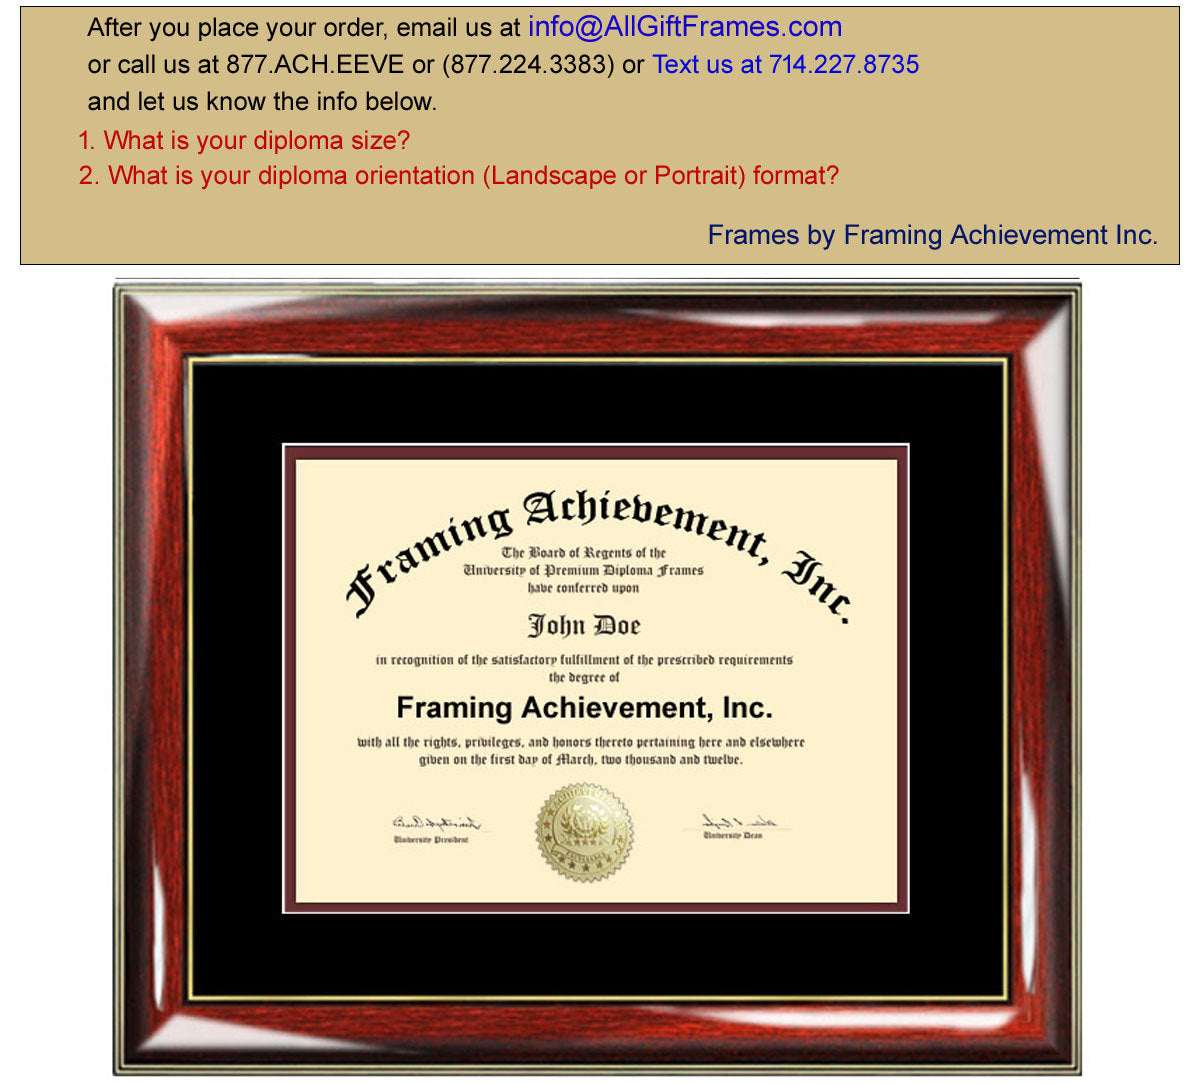 frames certificate diploma frame graduation degree university prestige matted mahogany maroon glossy inner mat college recognition achievement showcase gifts